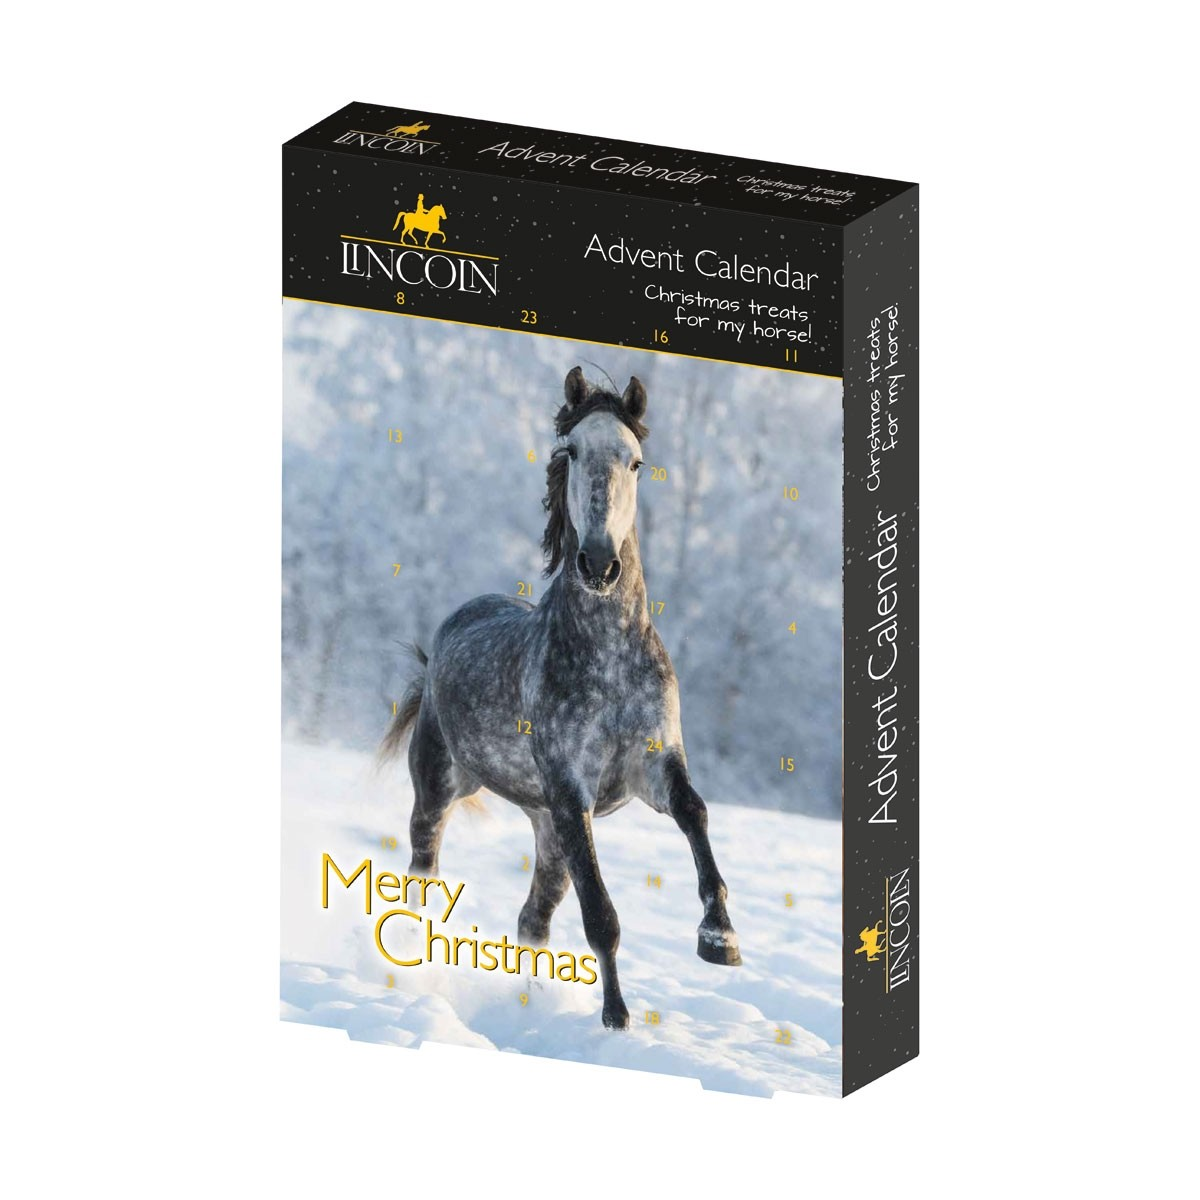 Lincoln Christmas Herb Stix Advent Calender  - Thomas Irving's equestrian and accessories store  Lincoln Christmas Herb Stix Advent Calender